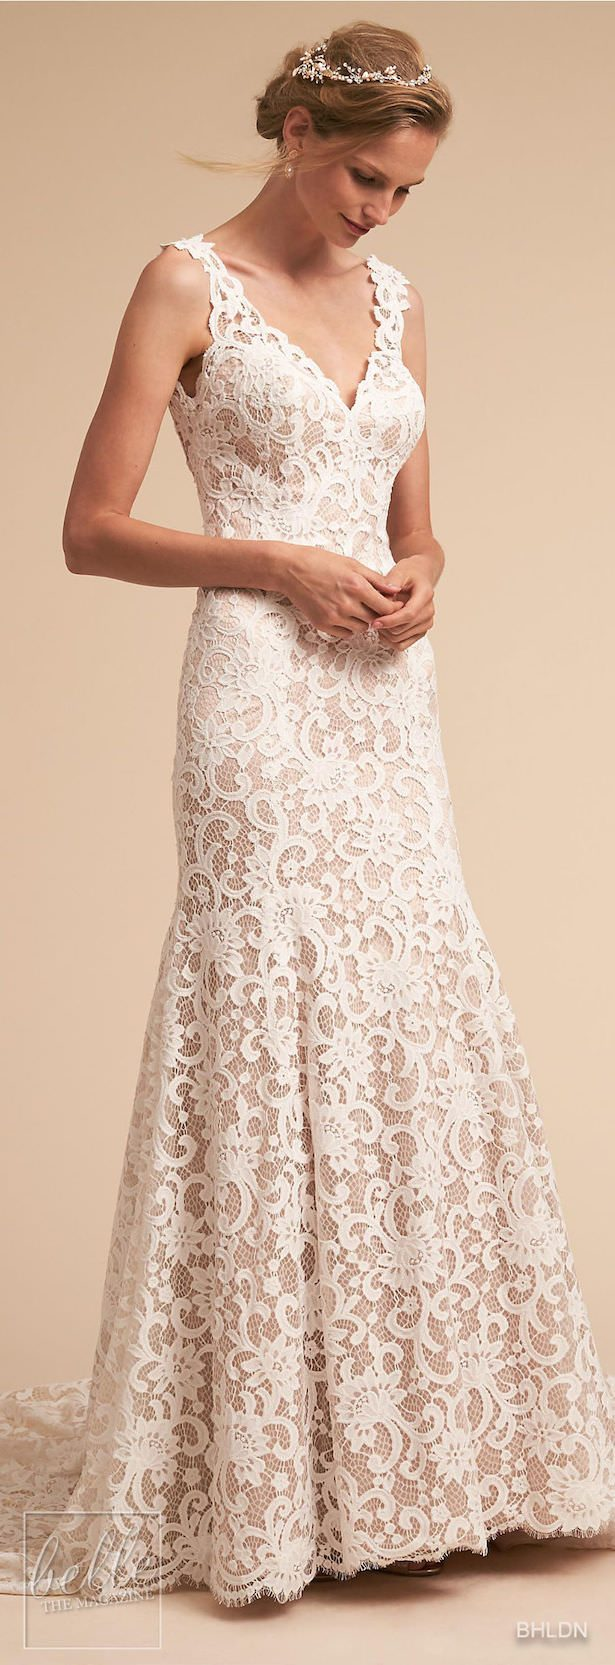 180978ee6904d8 Our Favorite Wedding Dresses from BHLDN - BridalPulse